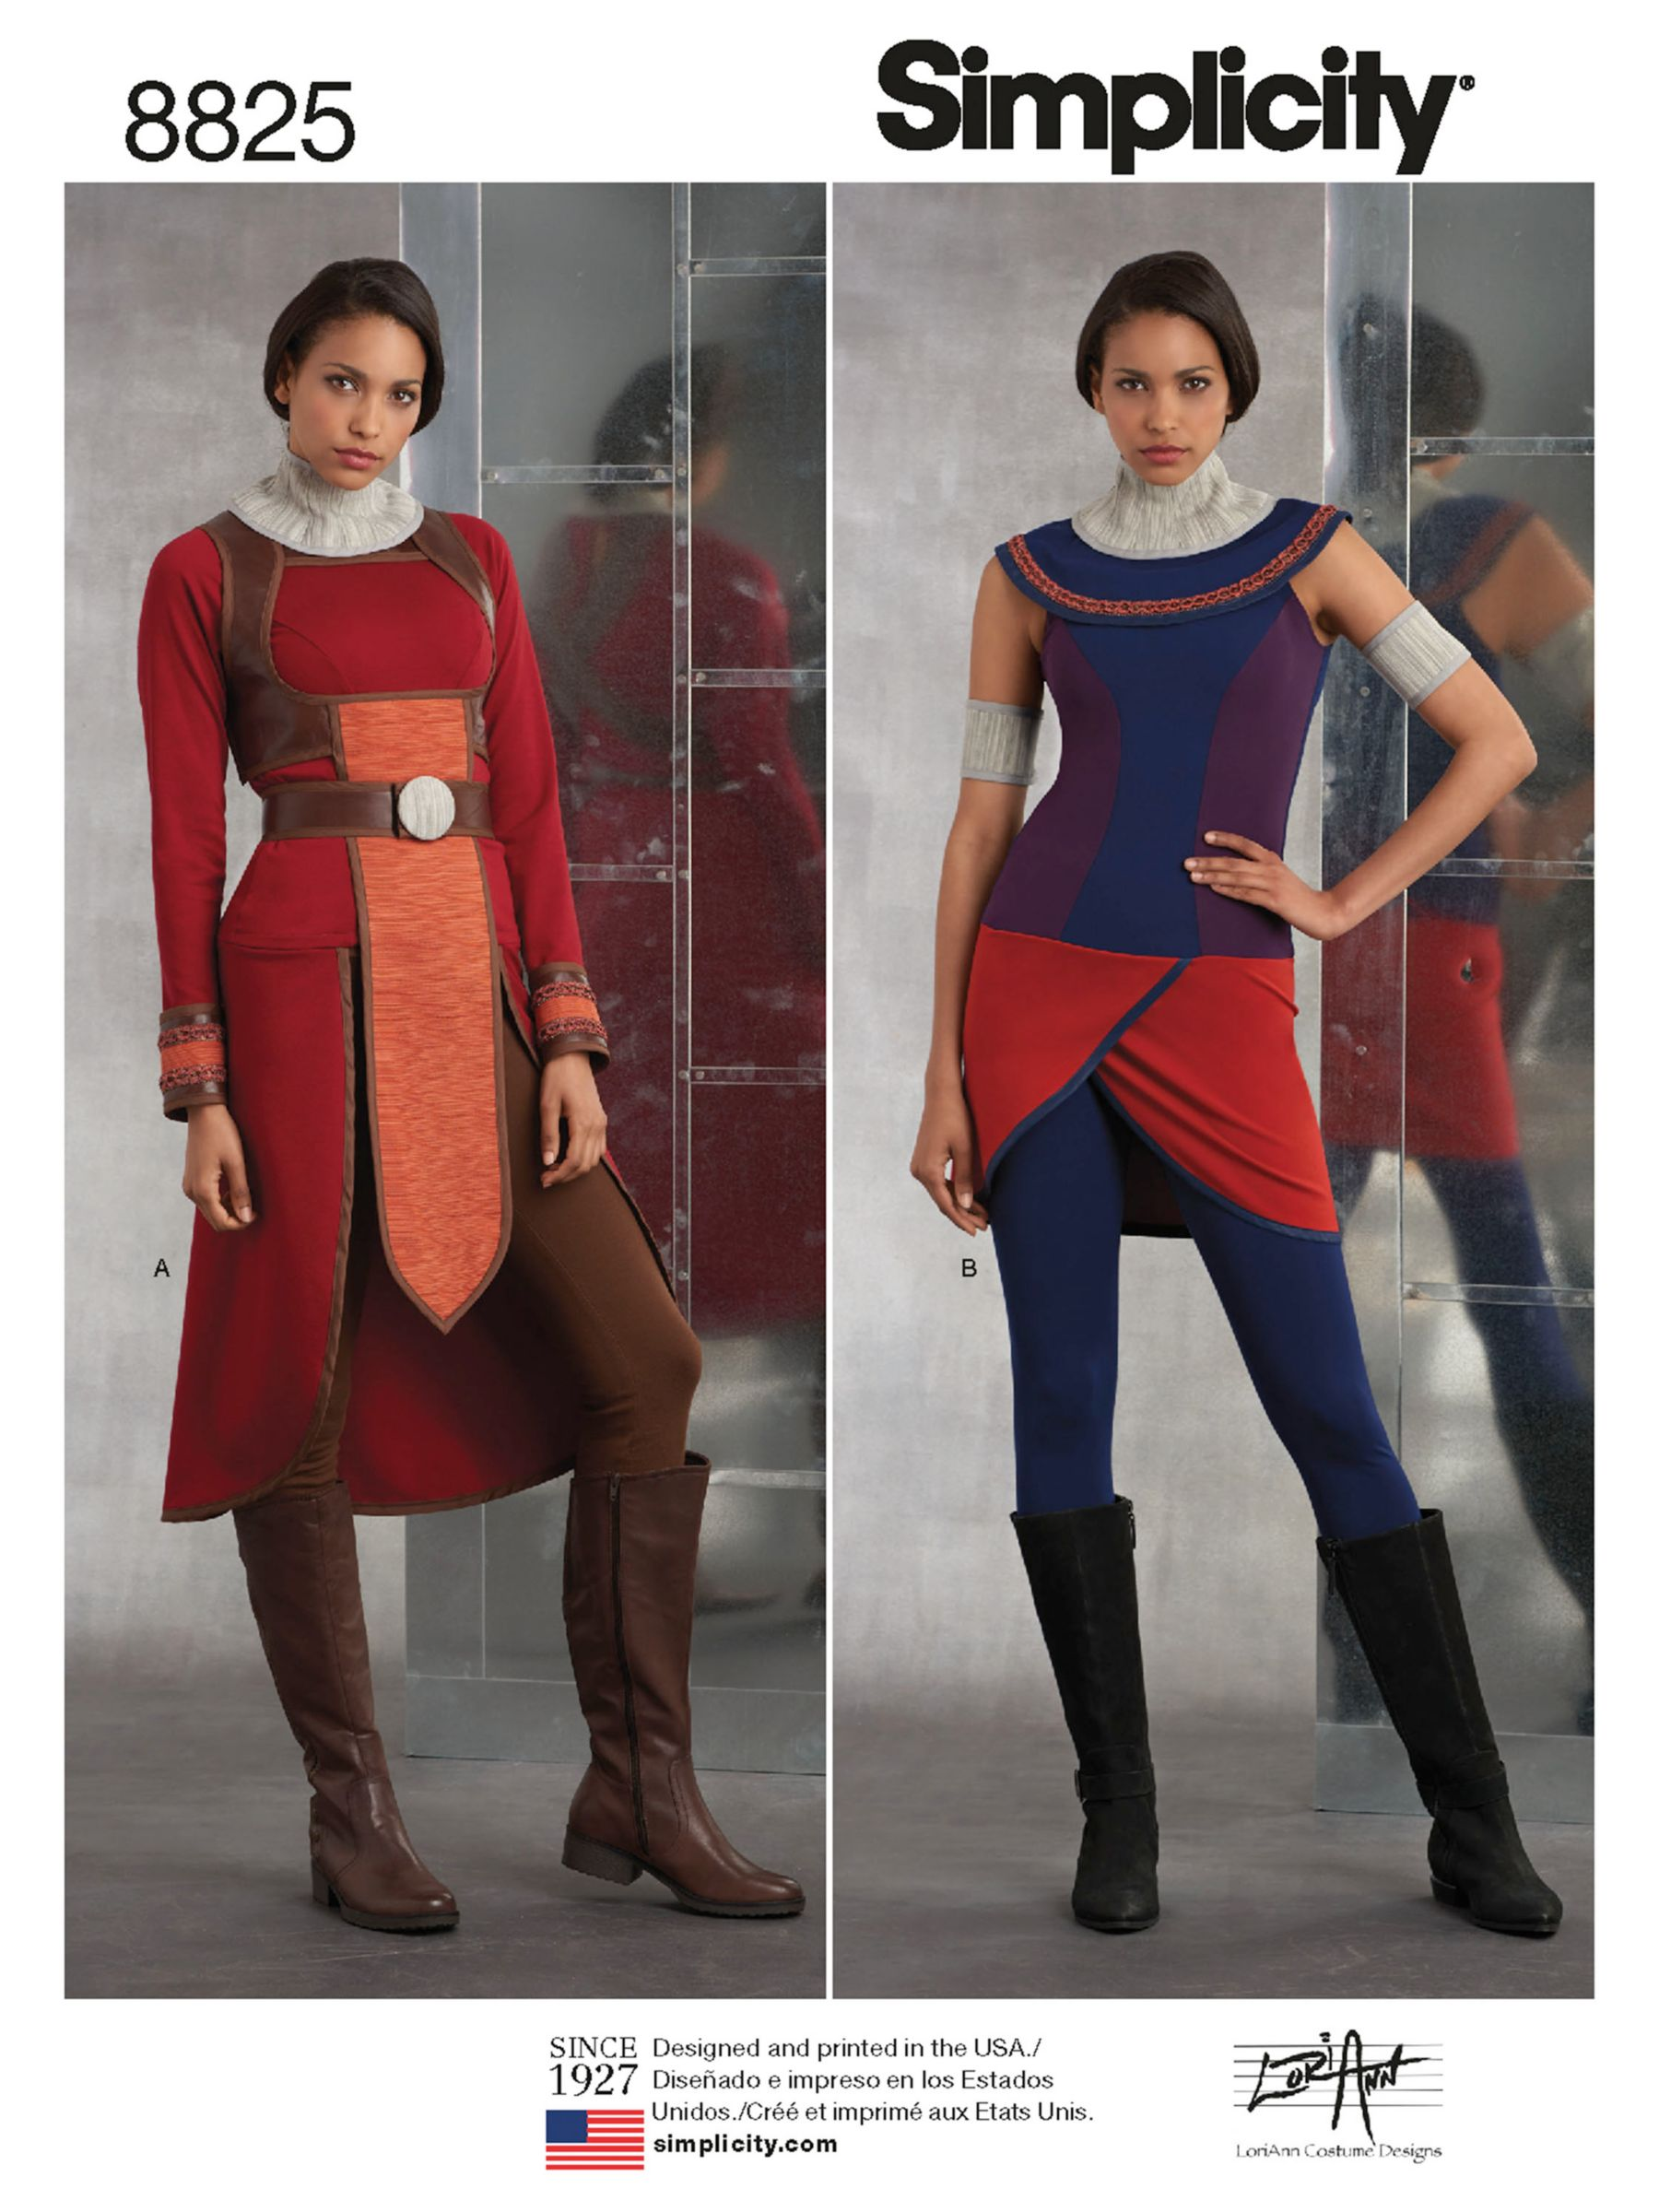 Simplicity Simplicity Women's Guard Costume Sewing Pattern, 8825